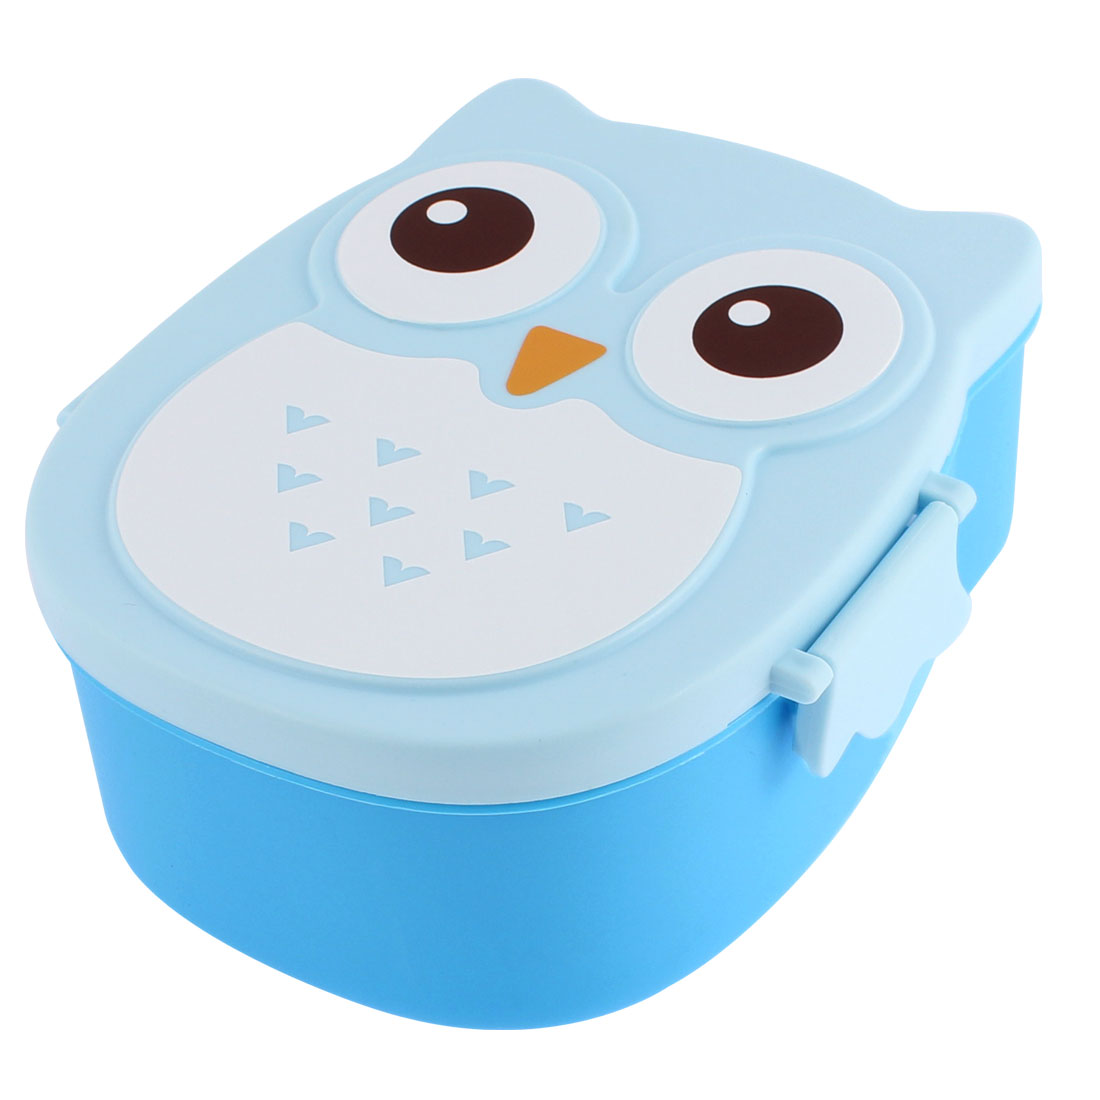 Cartoon Owl Design Plastic Lunch Box Food Container Storage Bento Blue